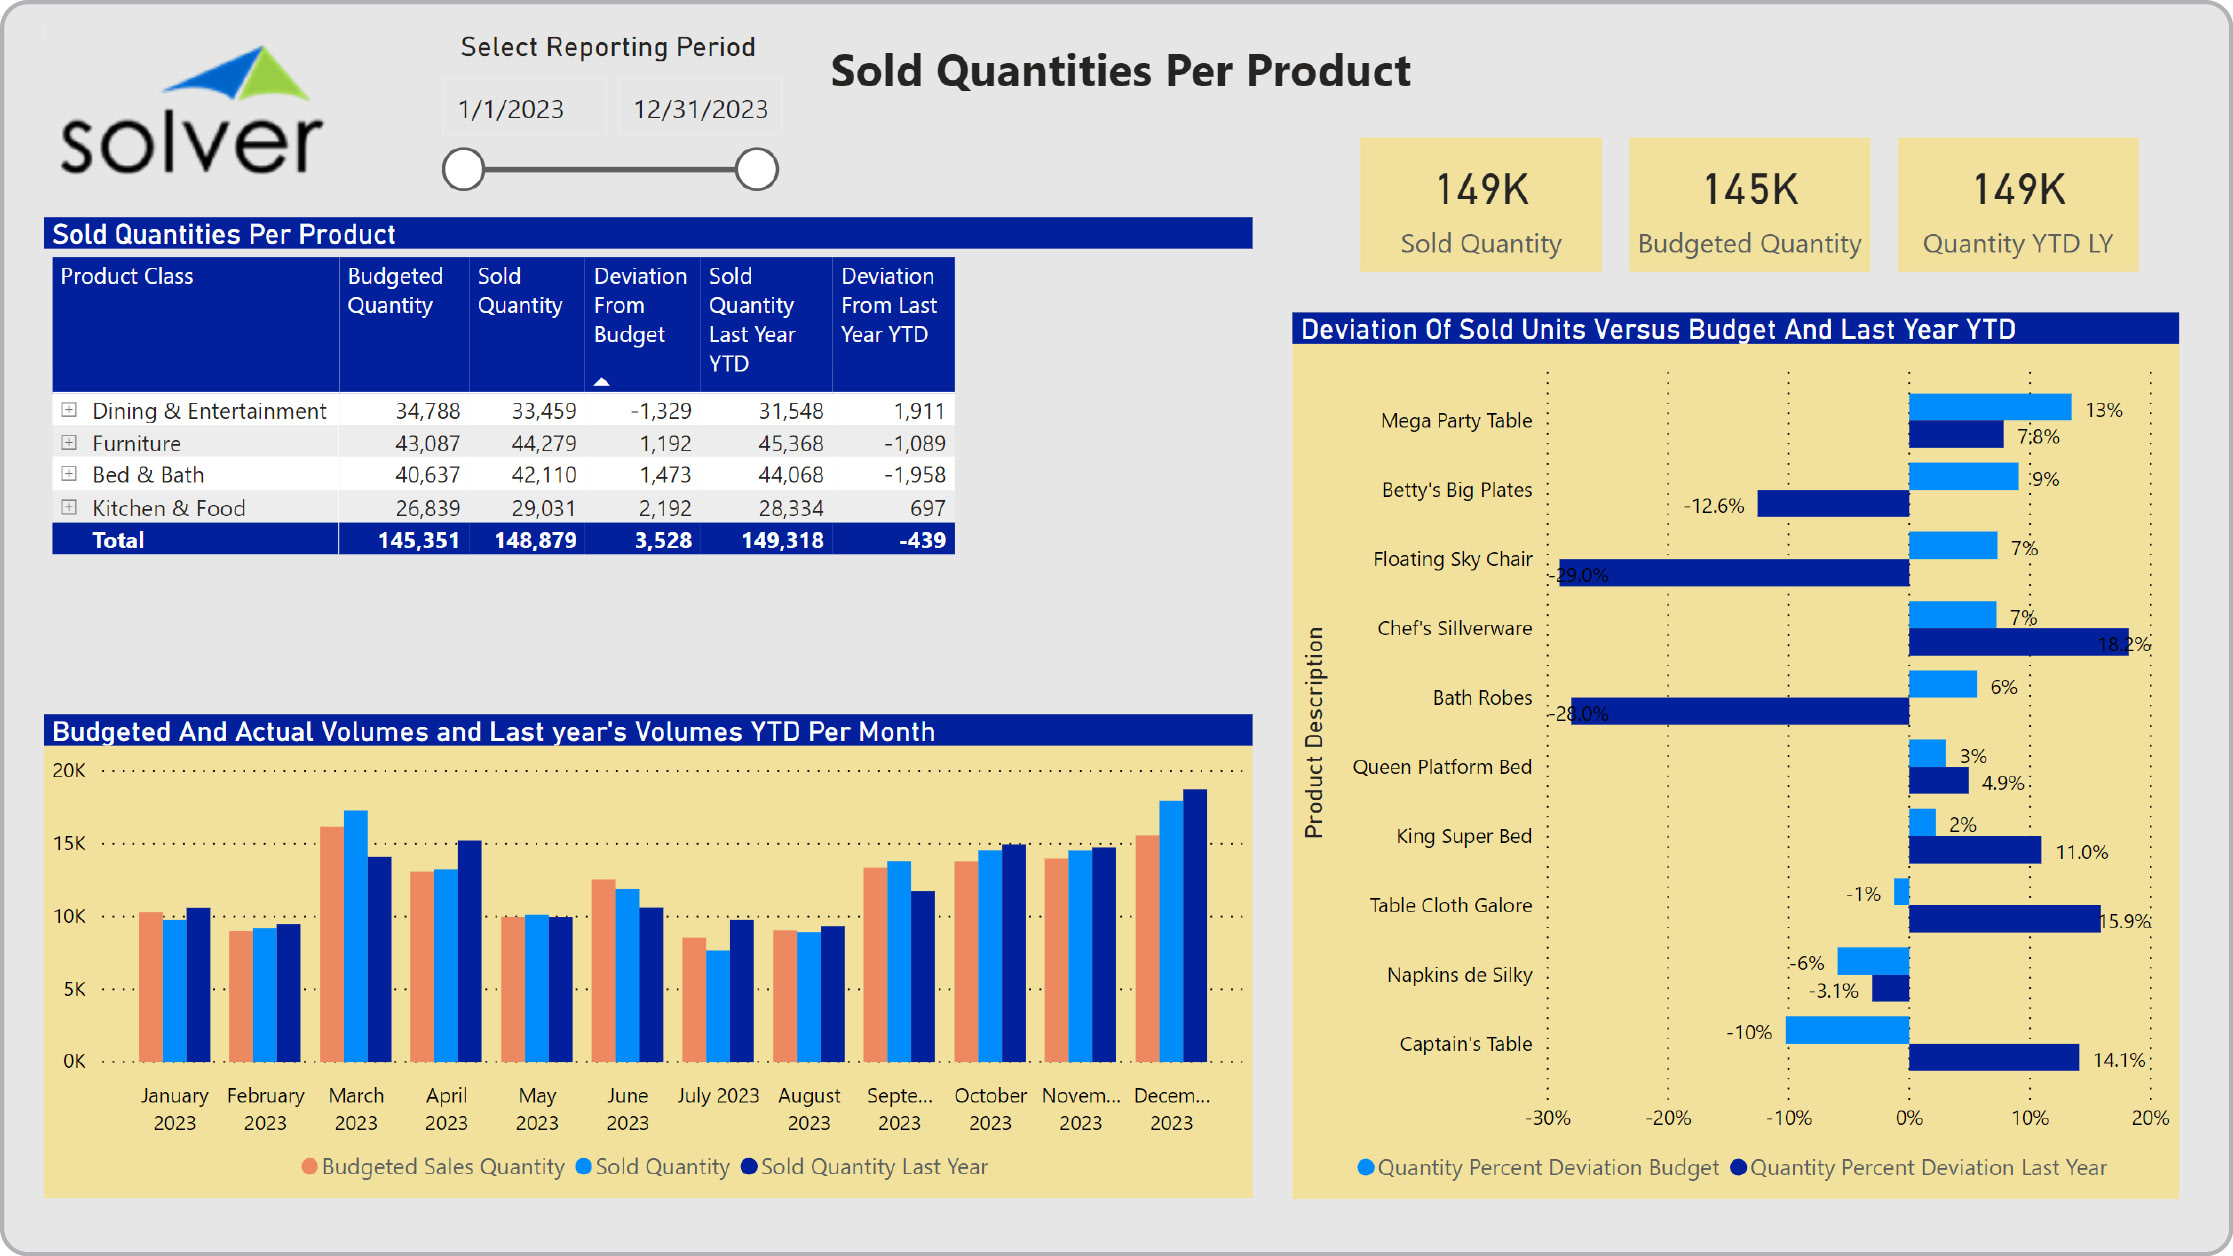 Retail – Sold Quantities per Product